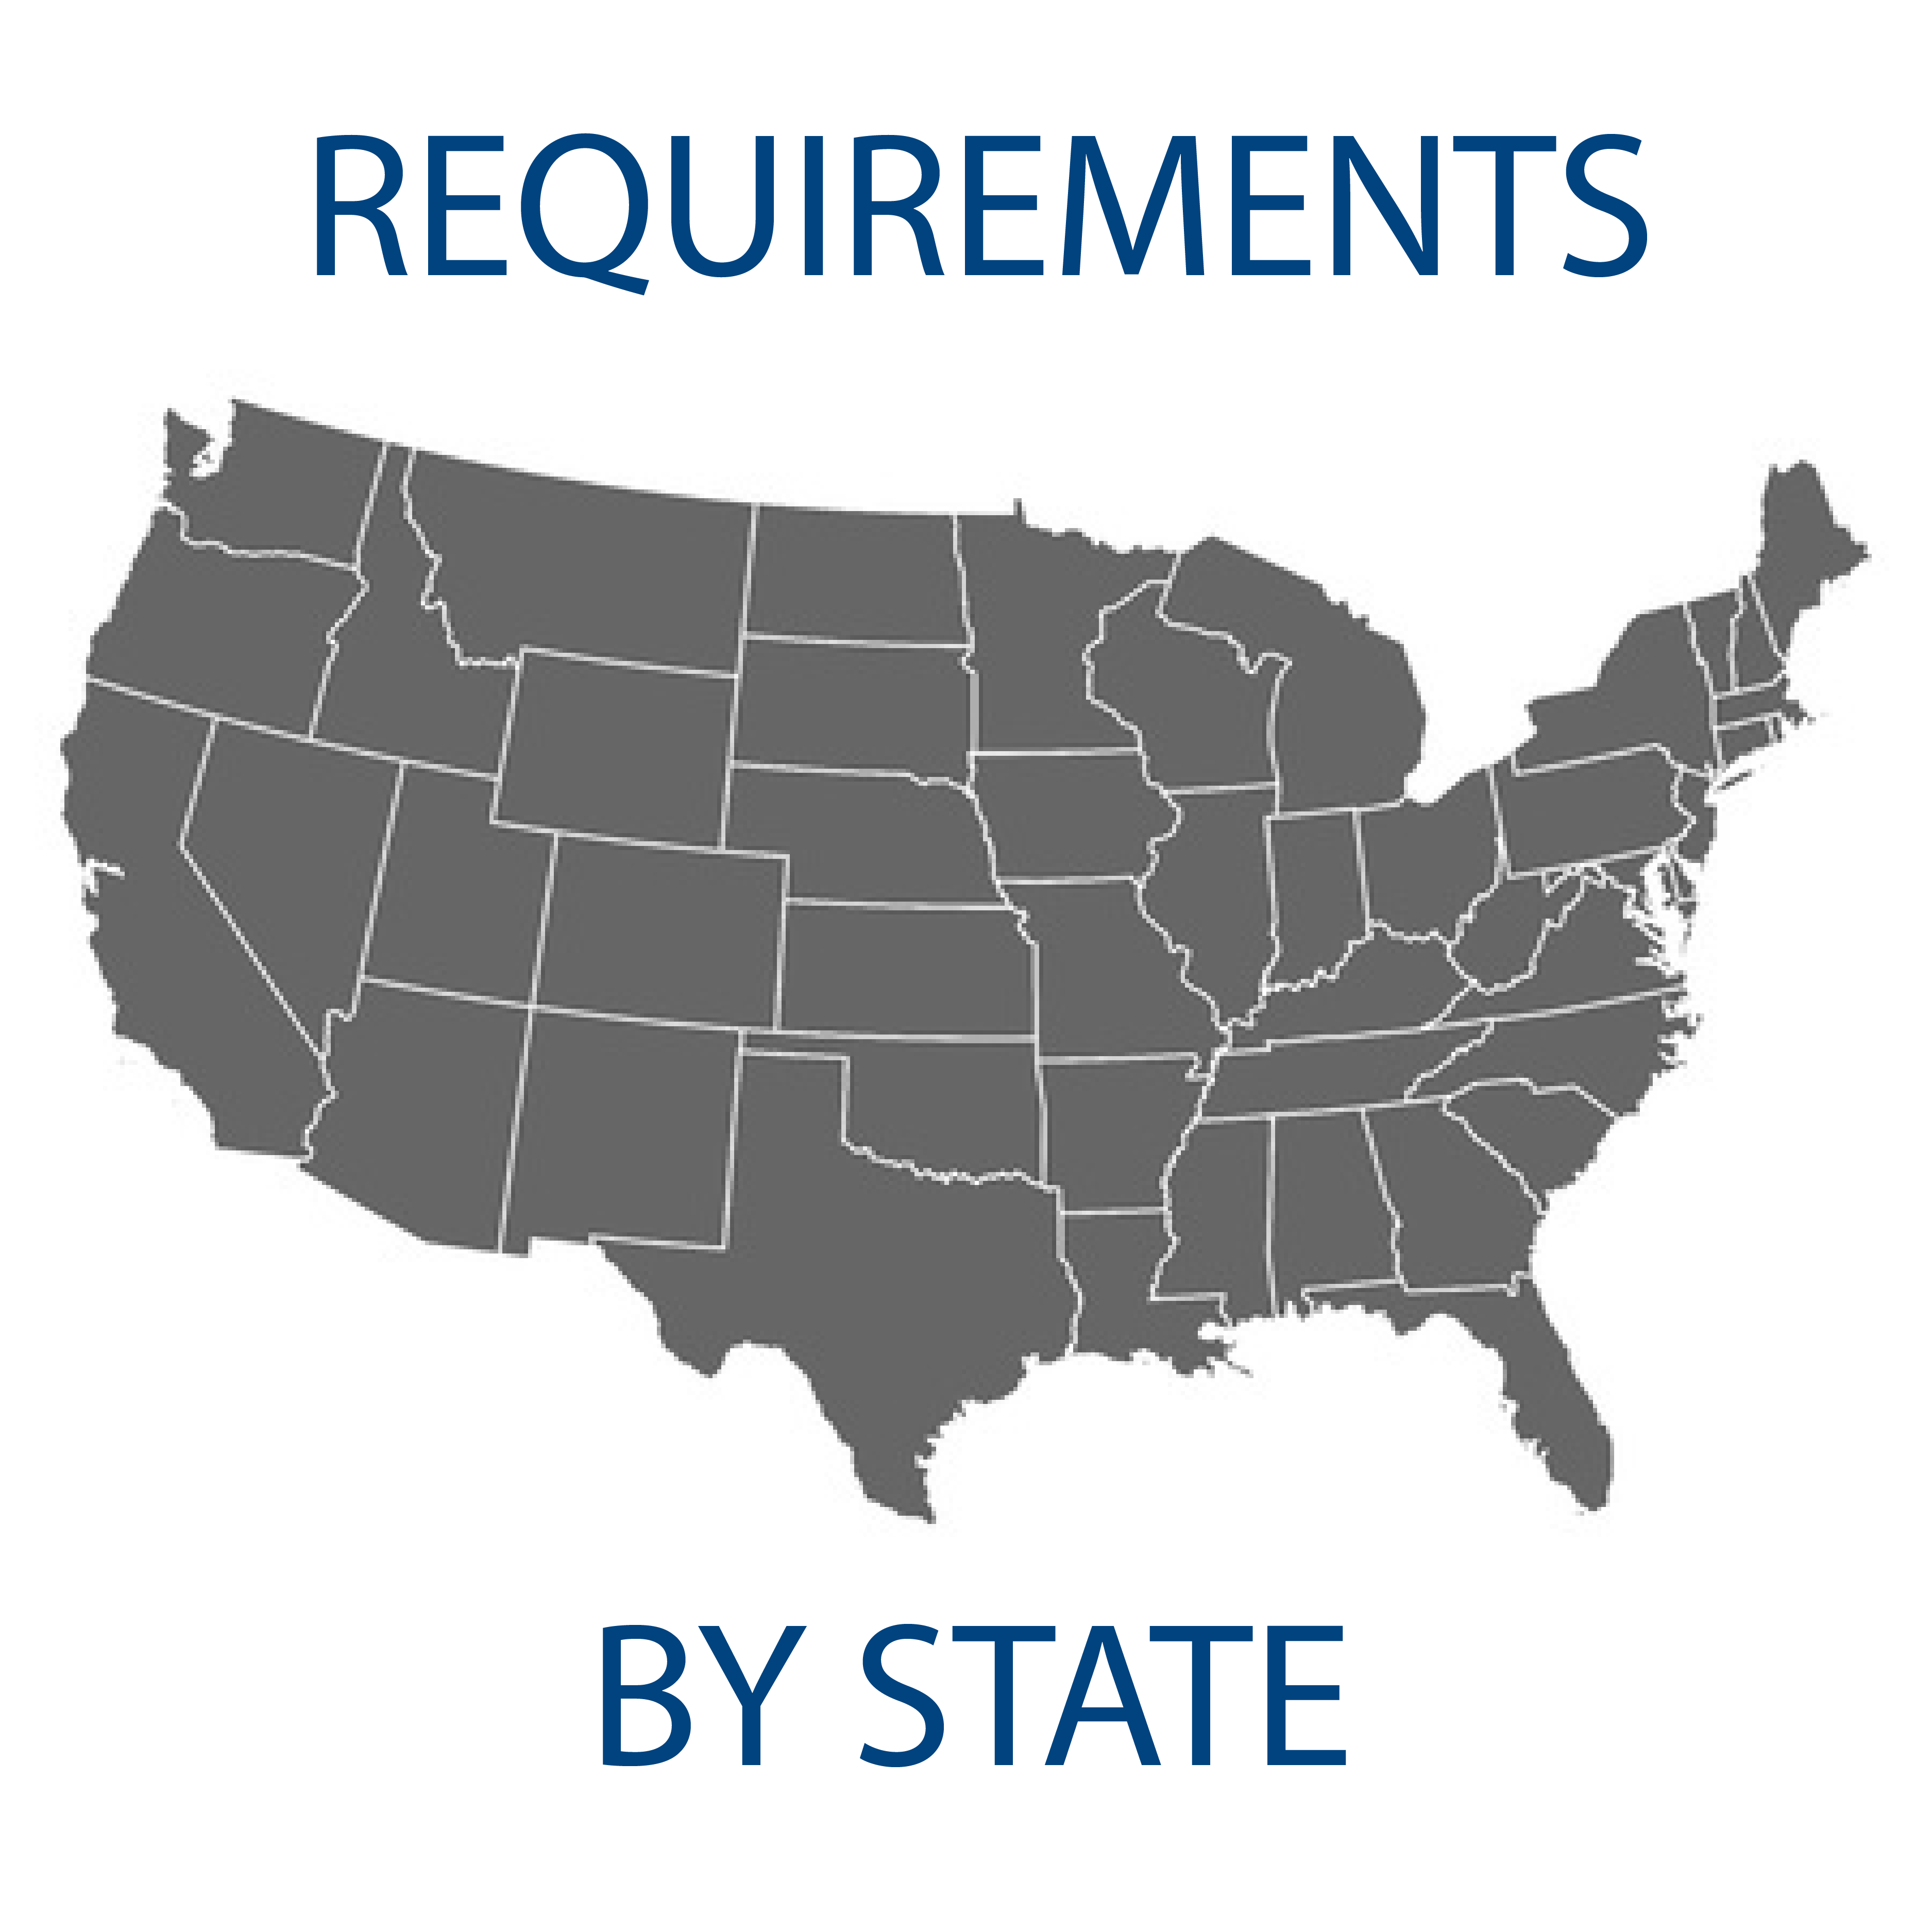 2019 Bar Exam Requirements [Everything You Need To Know]